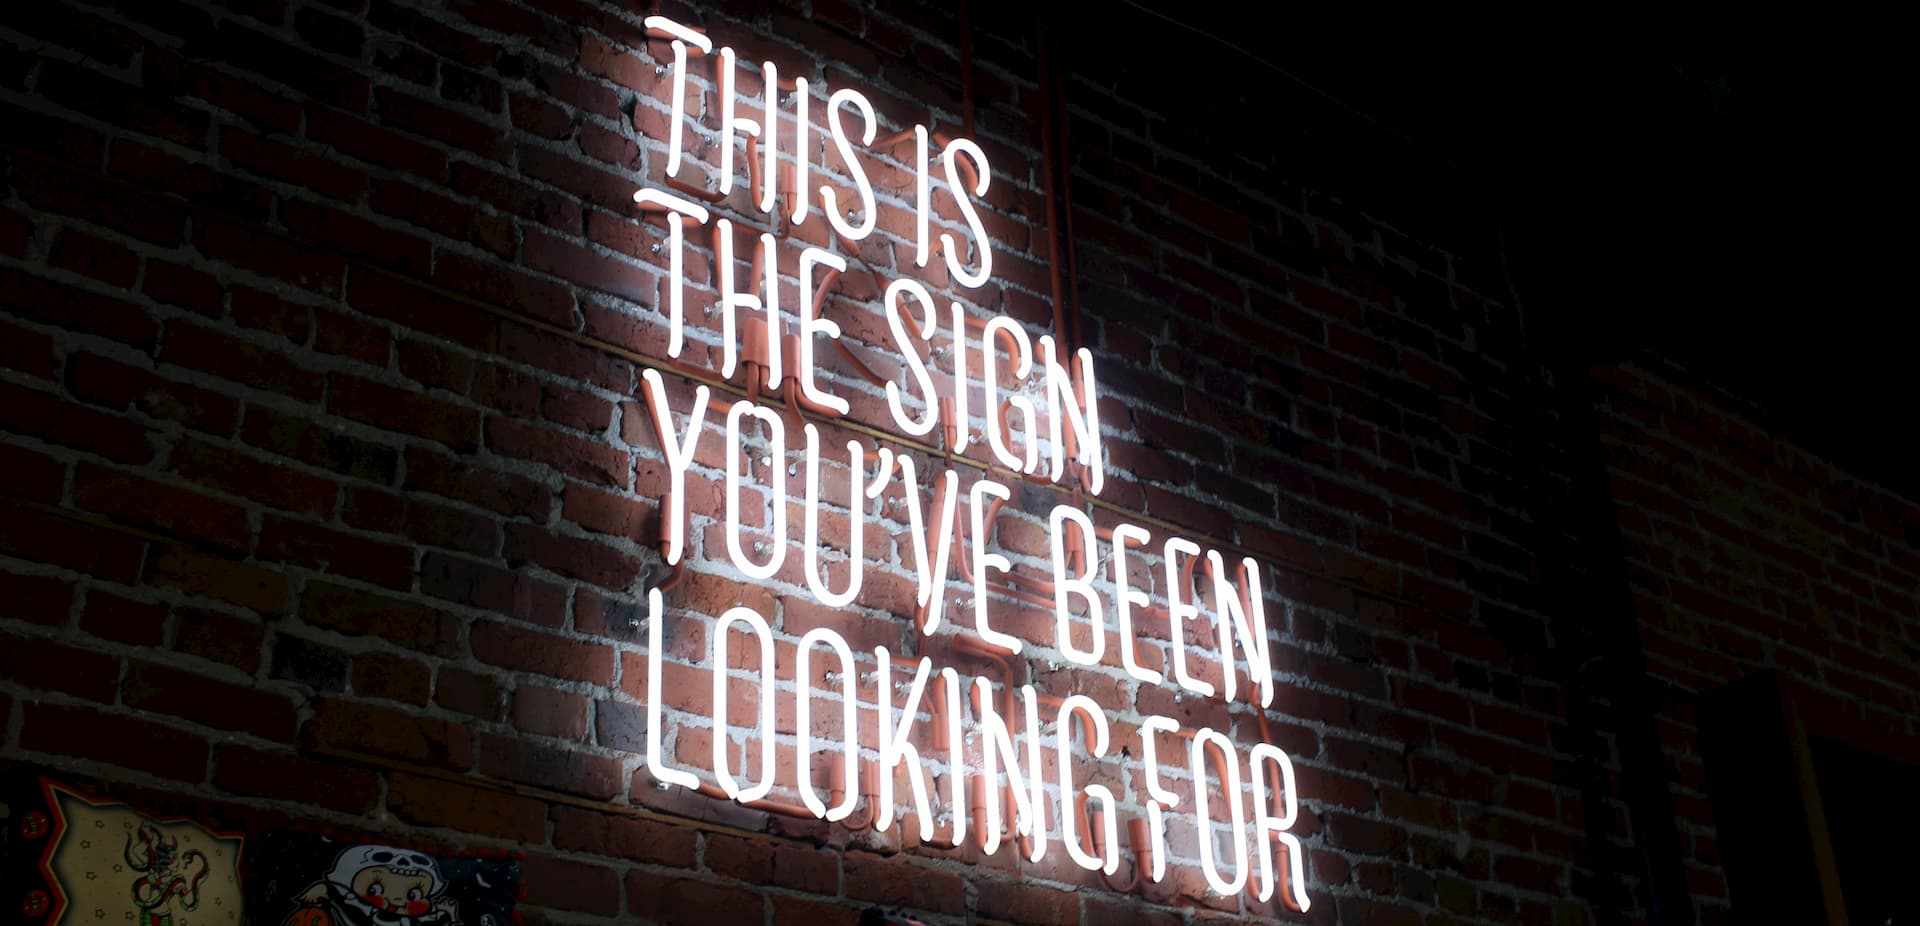 Neon sign on brick wall saying This is the sign you've been looking for